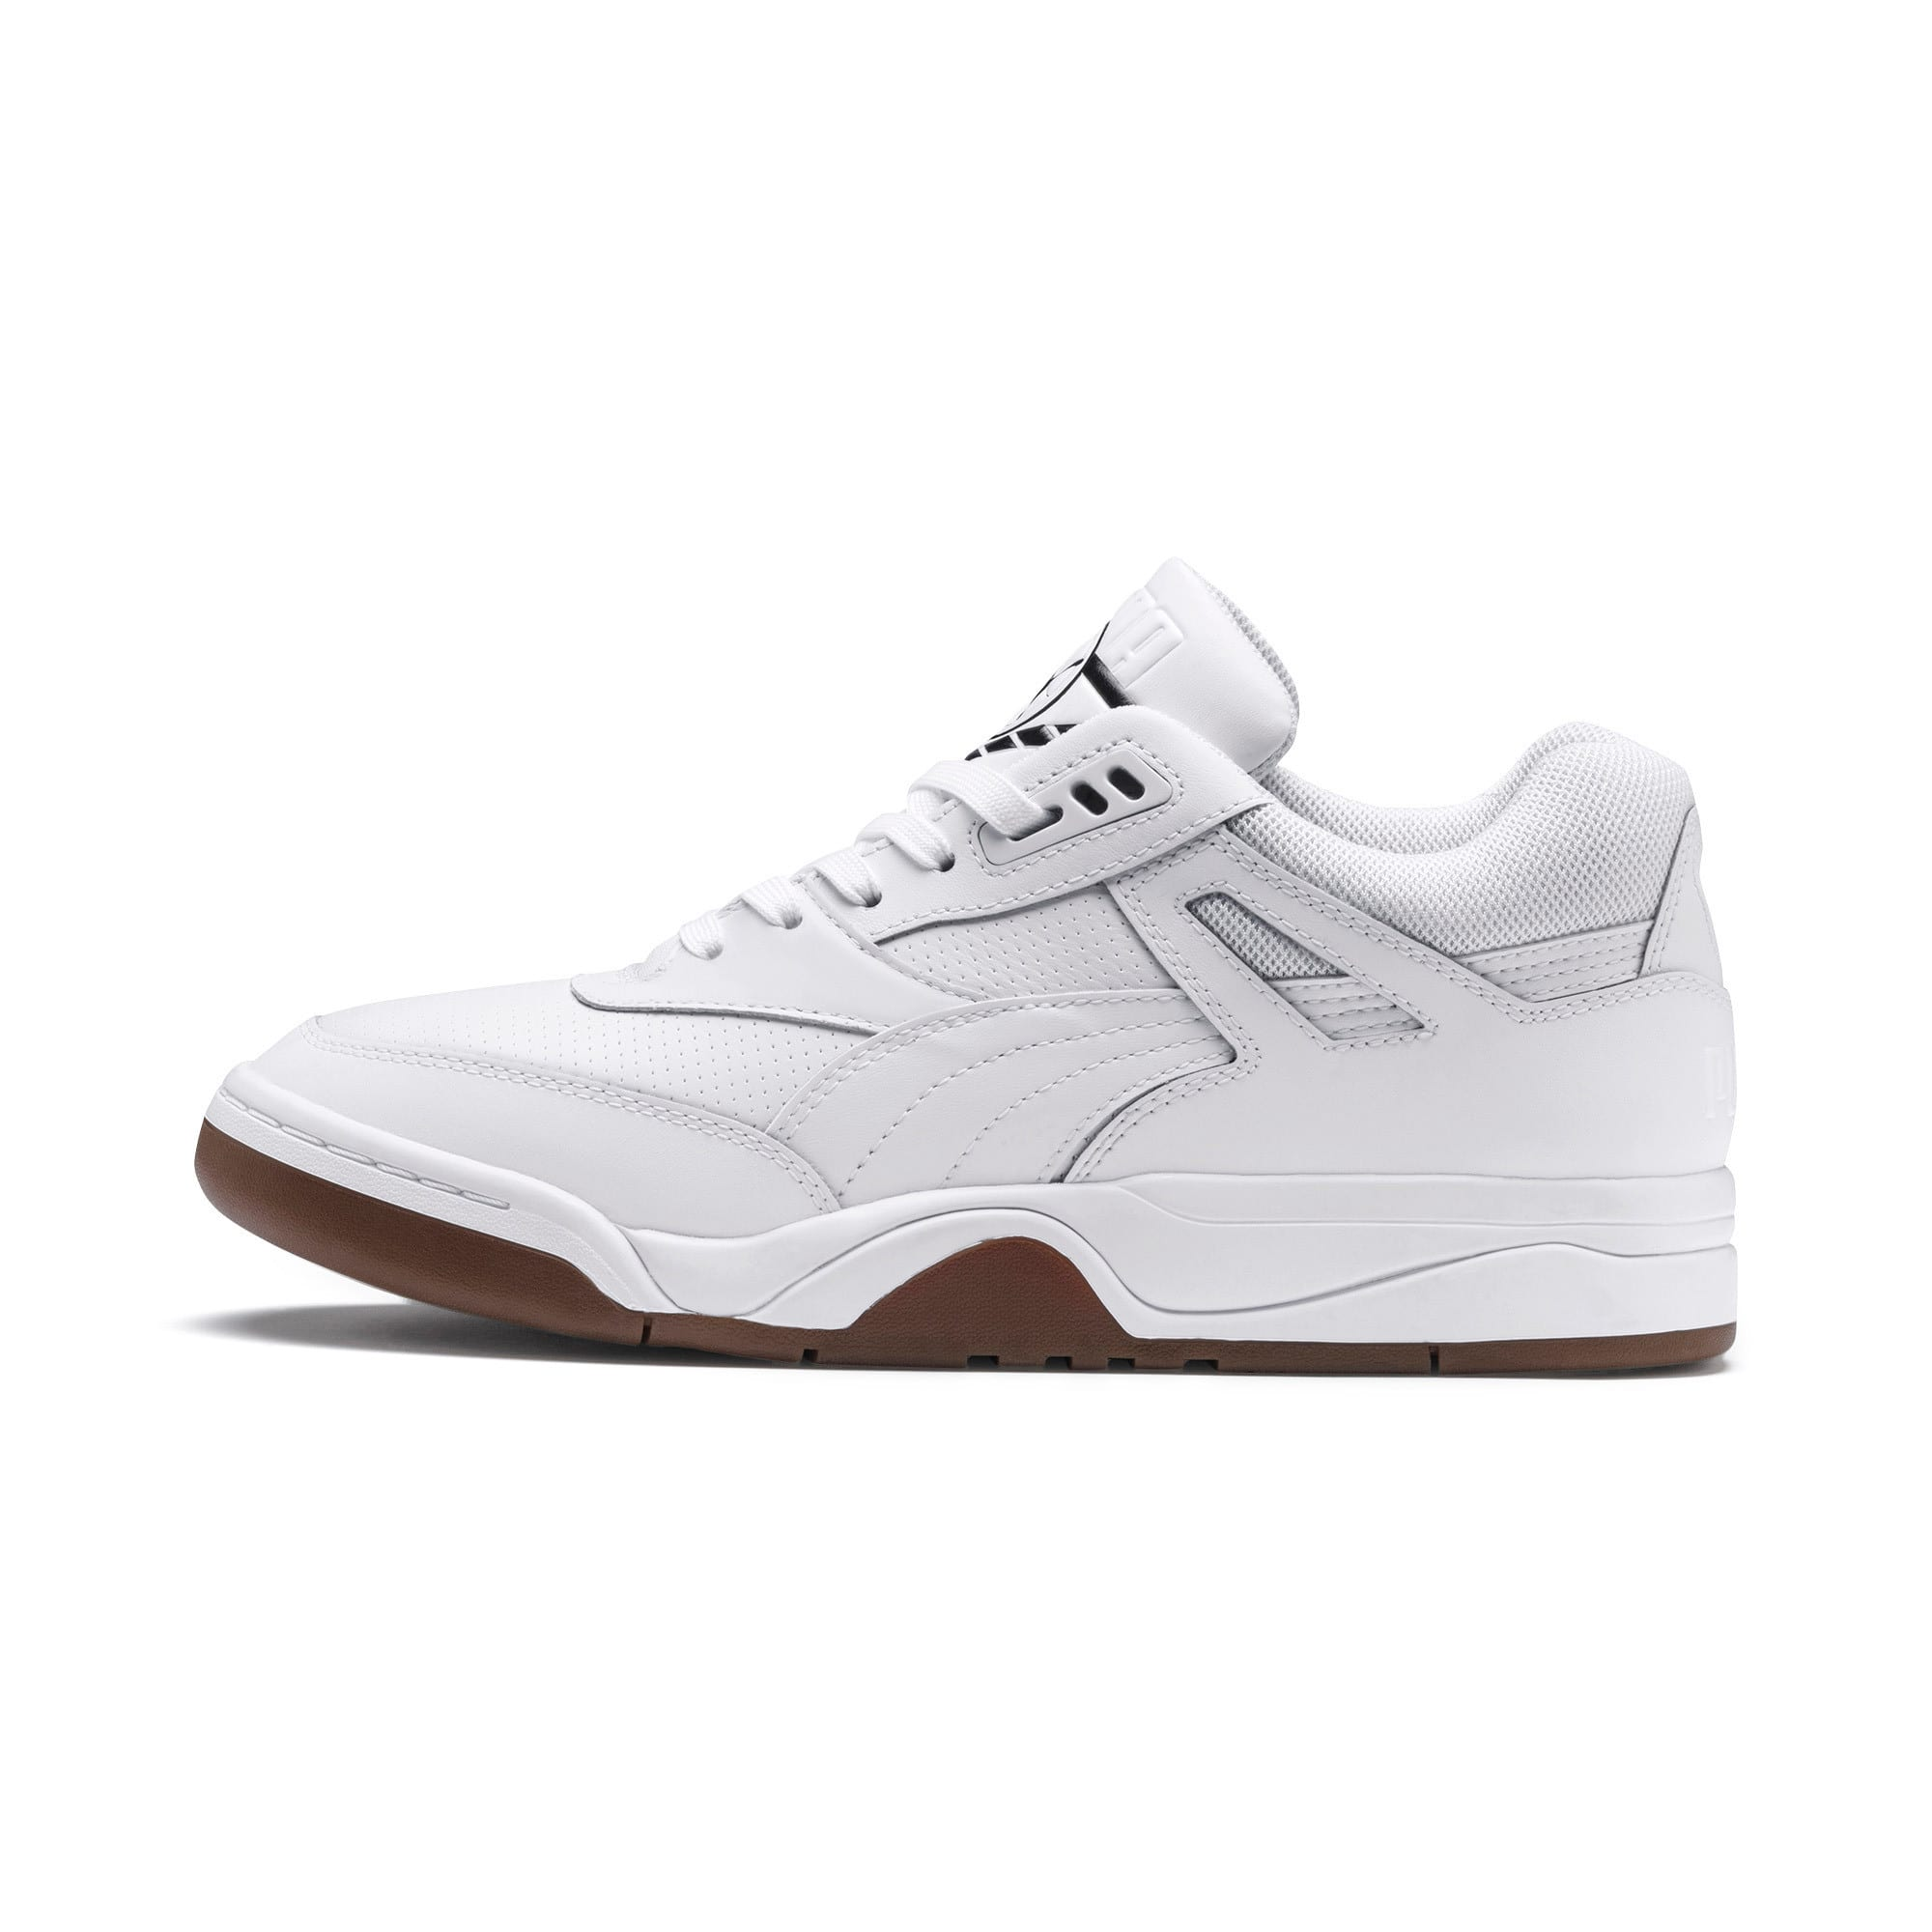 Anteprima 1 di Palace Guard Men's Basketball Trainers, Puma White-Puma White-Gum, medio